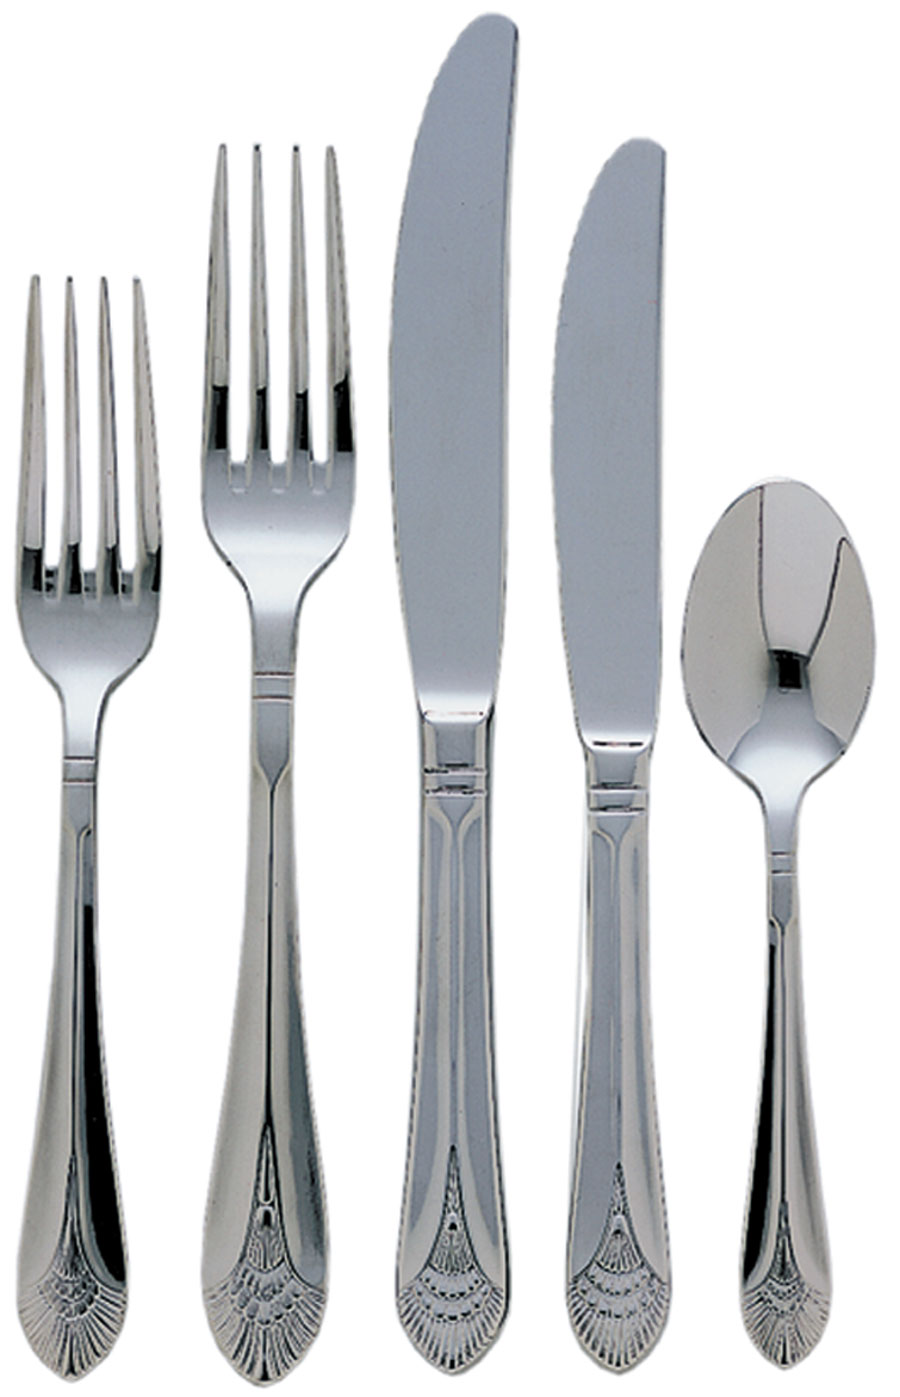 Update International MA-205 Marquis Dinner Fork - 1 doz